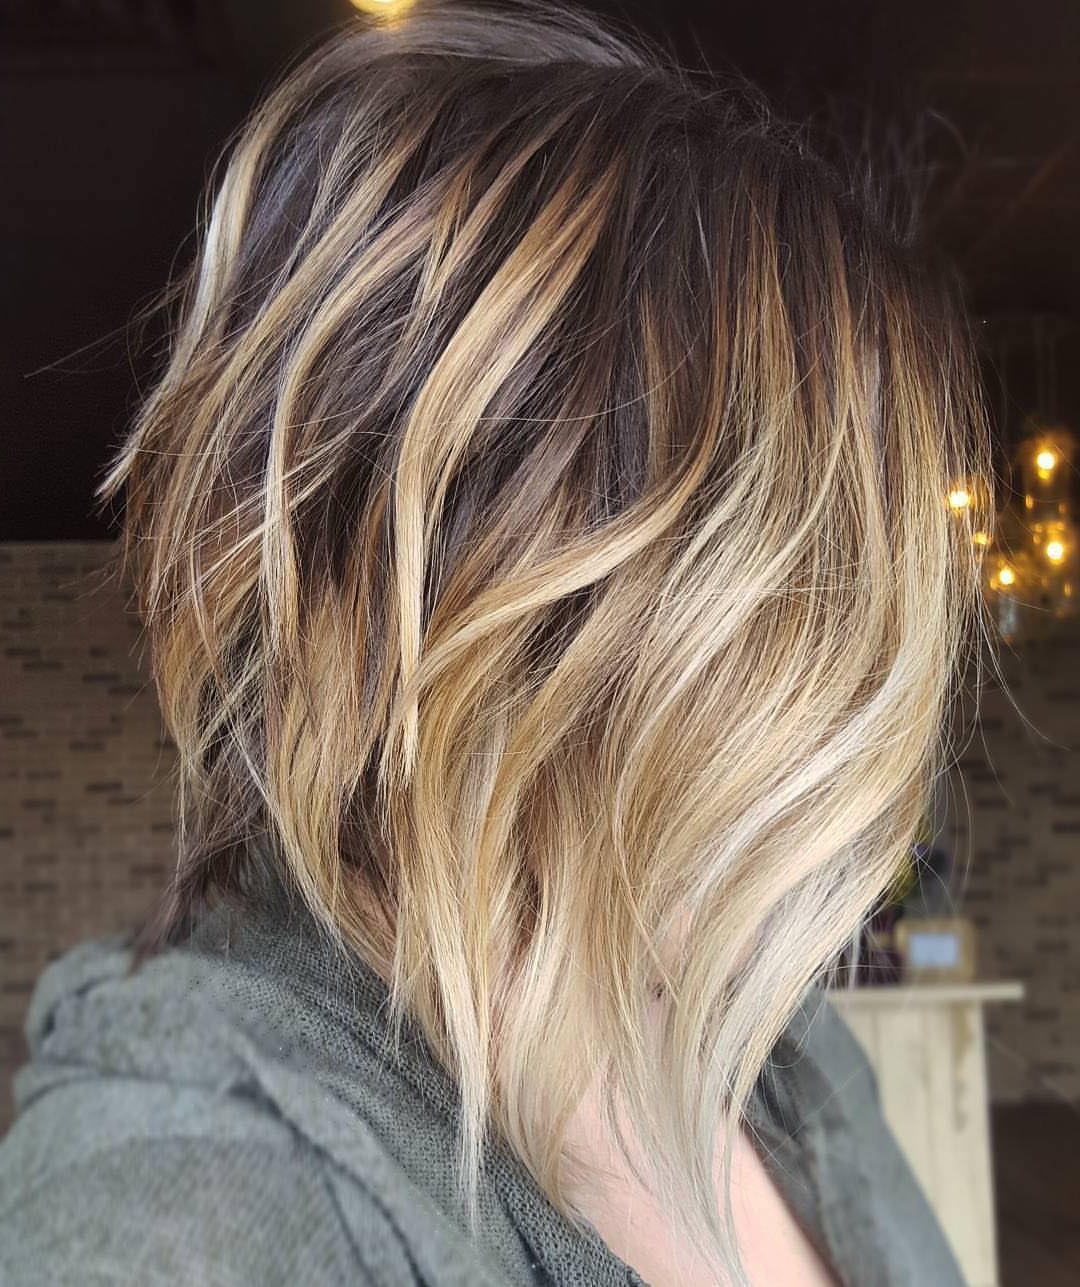 10 Cute Medium Hairstyles With Gorgeous Color Twists – Medium Intended For Angled Ash Blonde Haircuts (View 3 of 20)